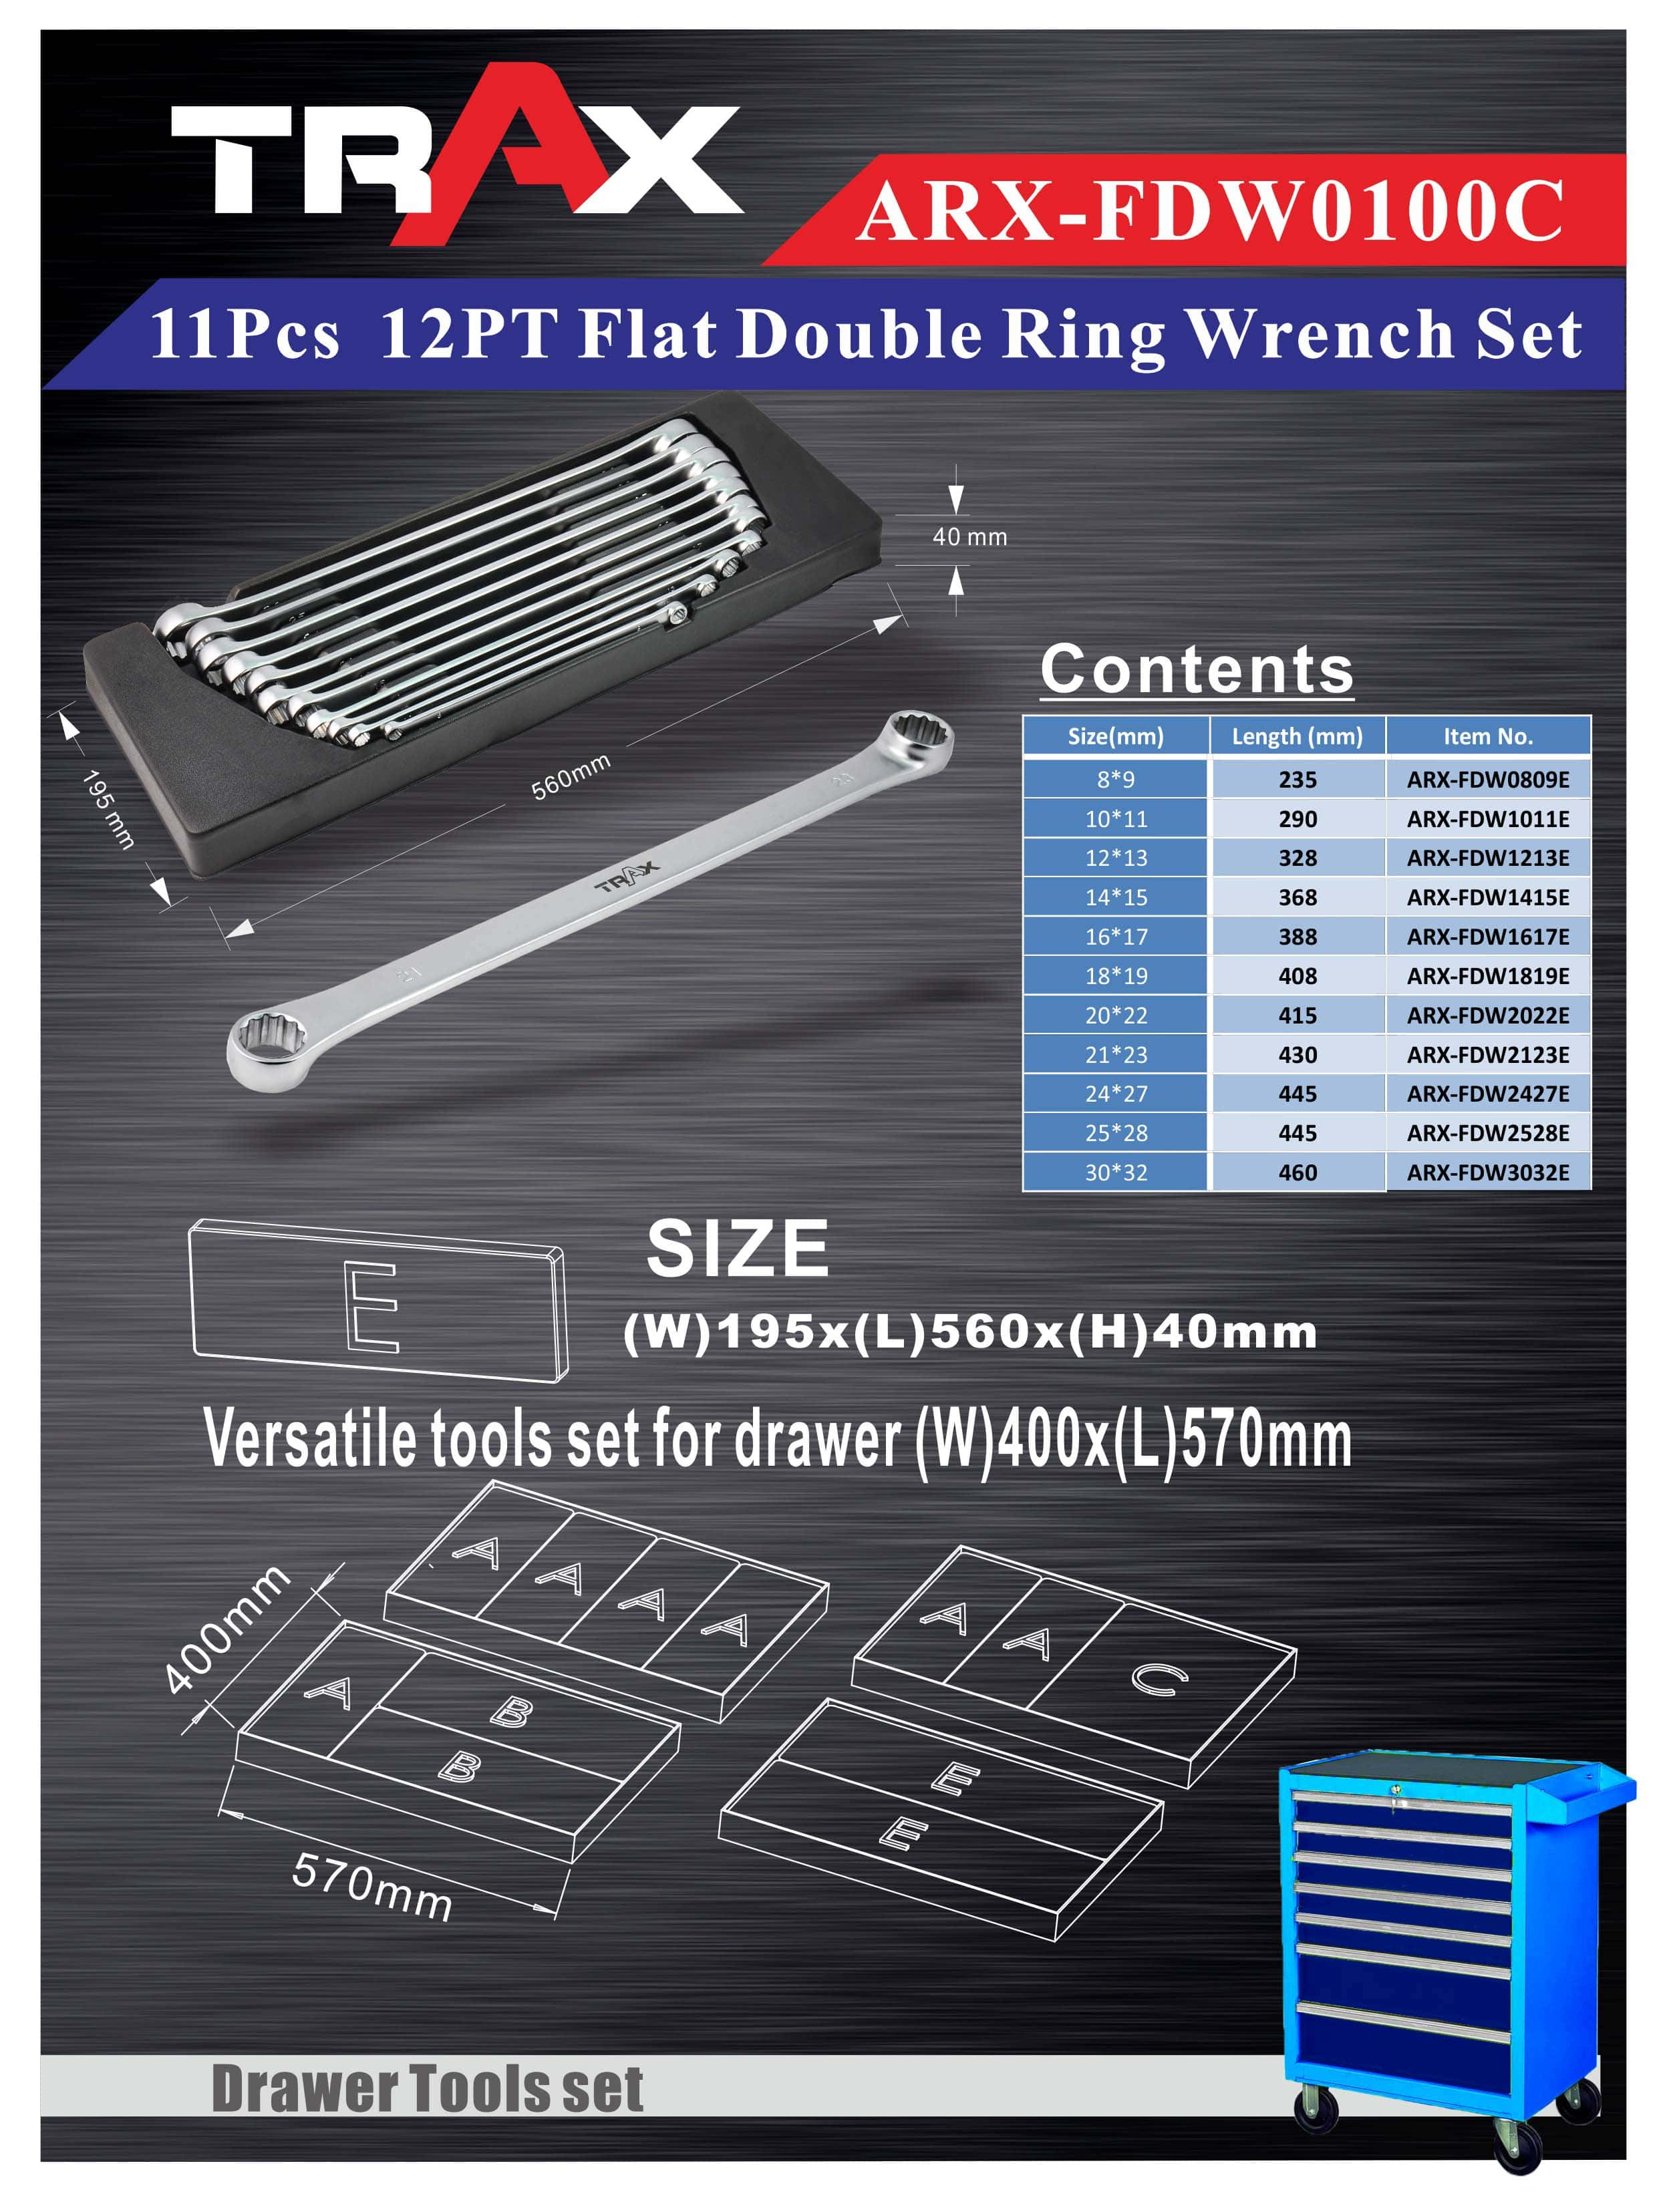 ARX-FDW0100C[11Pcs 12PT Flat Double Ring Wrench Set]